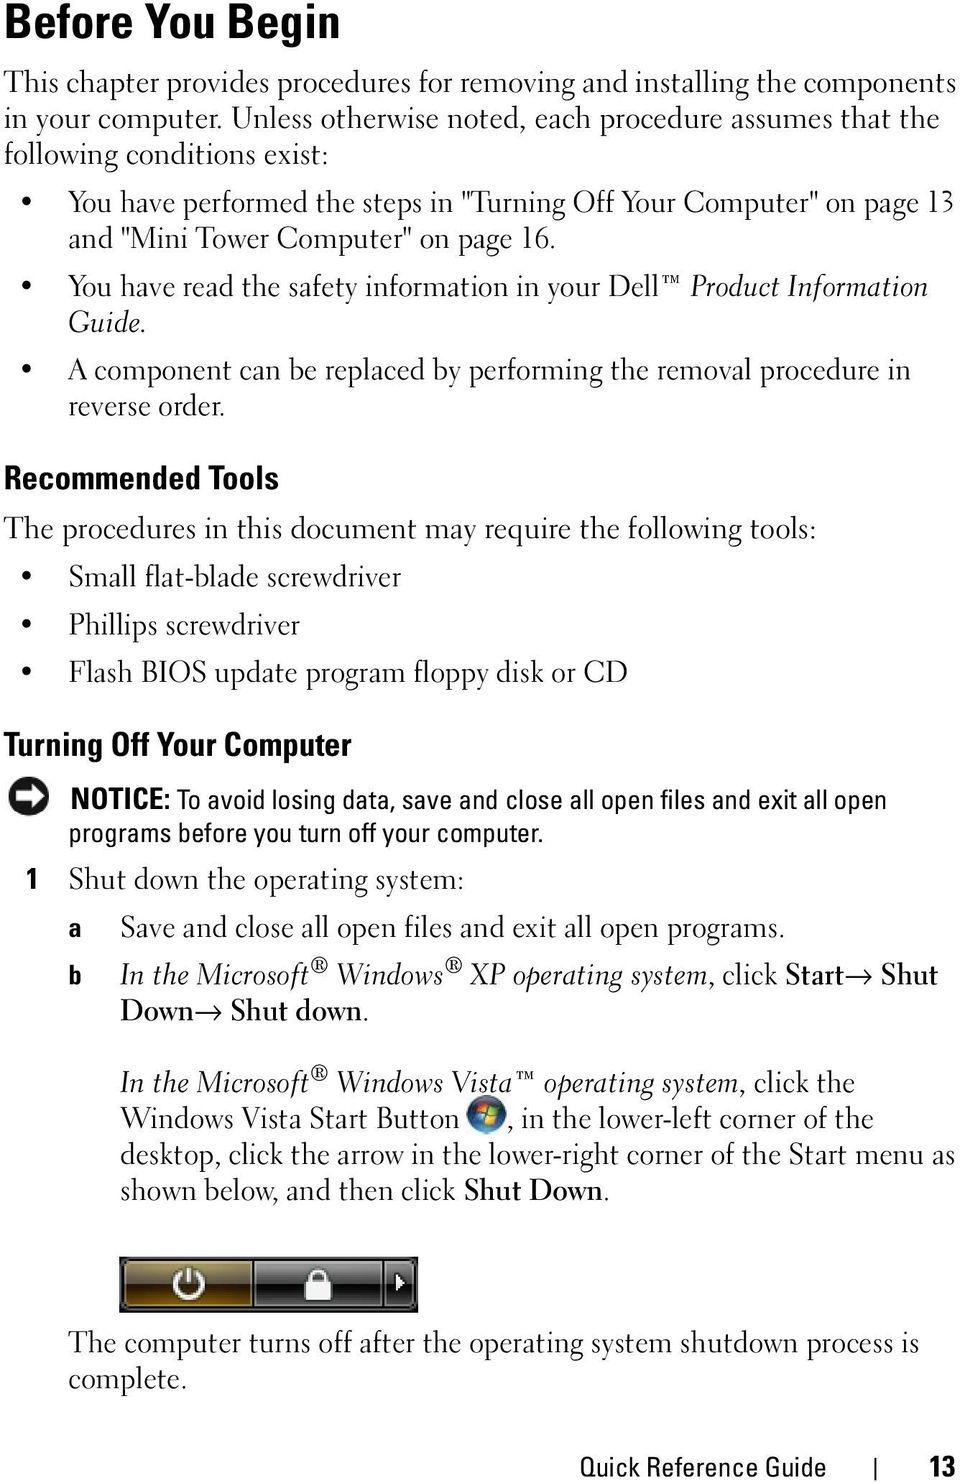 You have read the safety information in your Dell Product Information Guide. A component can be replaced by performing the removal procedure in reverse order.